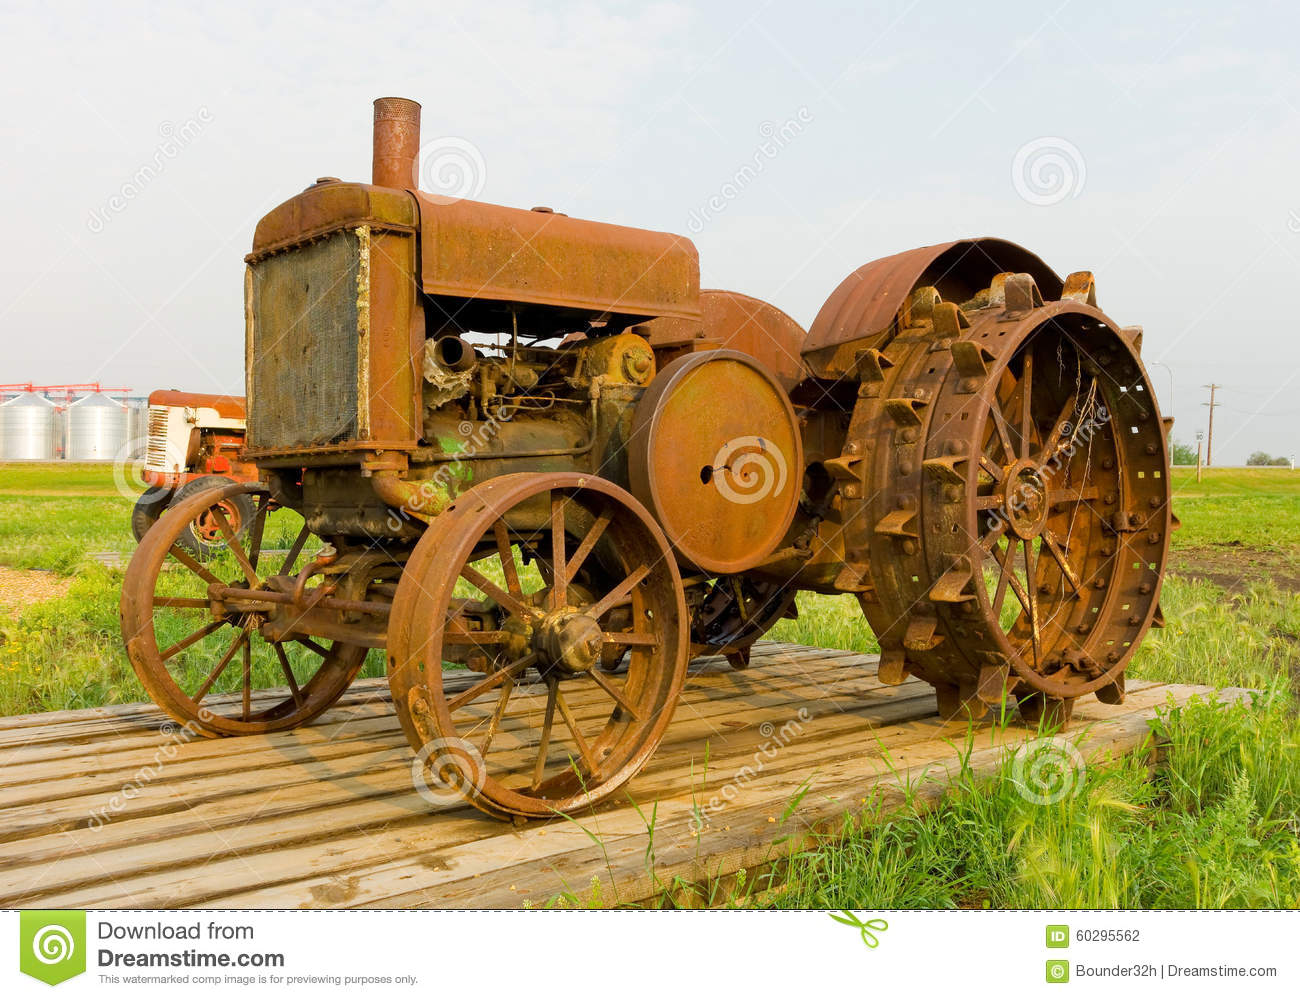 Antique Tractors Equipment : An antique tractor with spiked iron wheels at